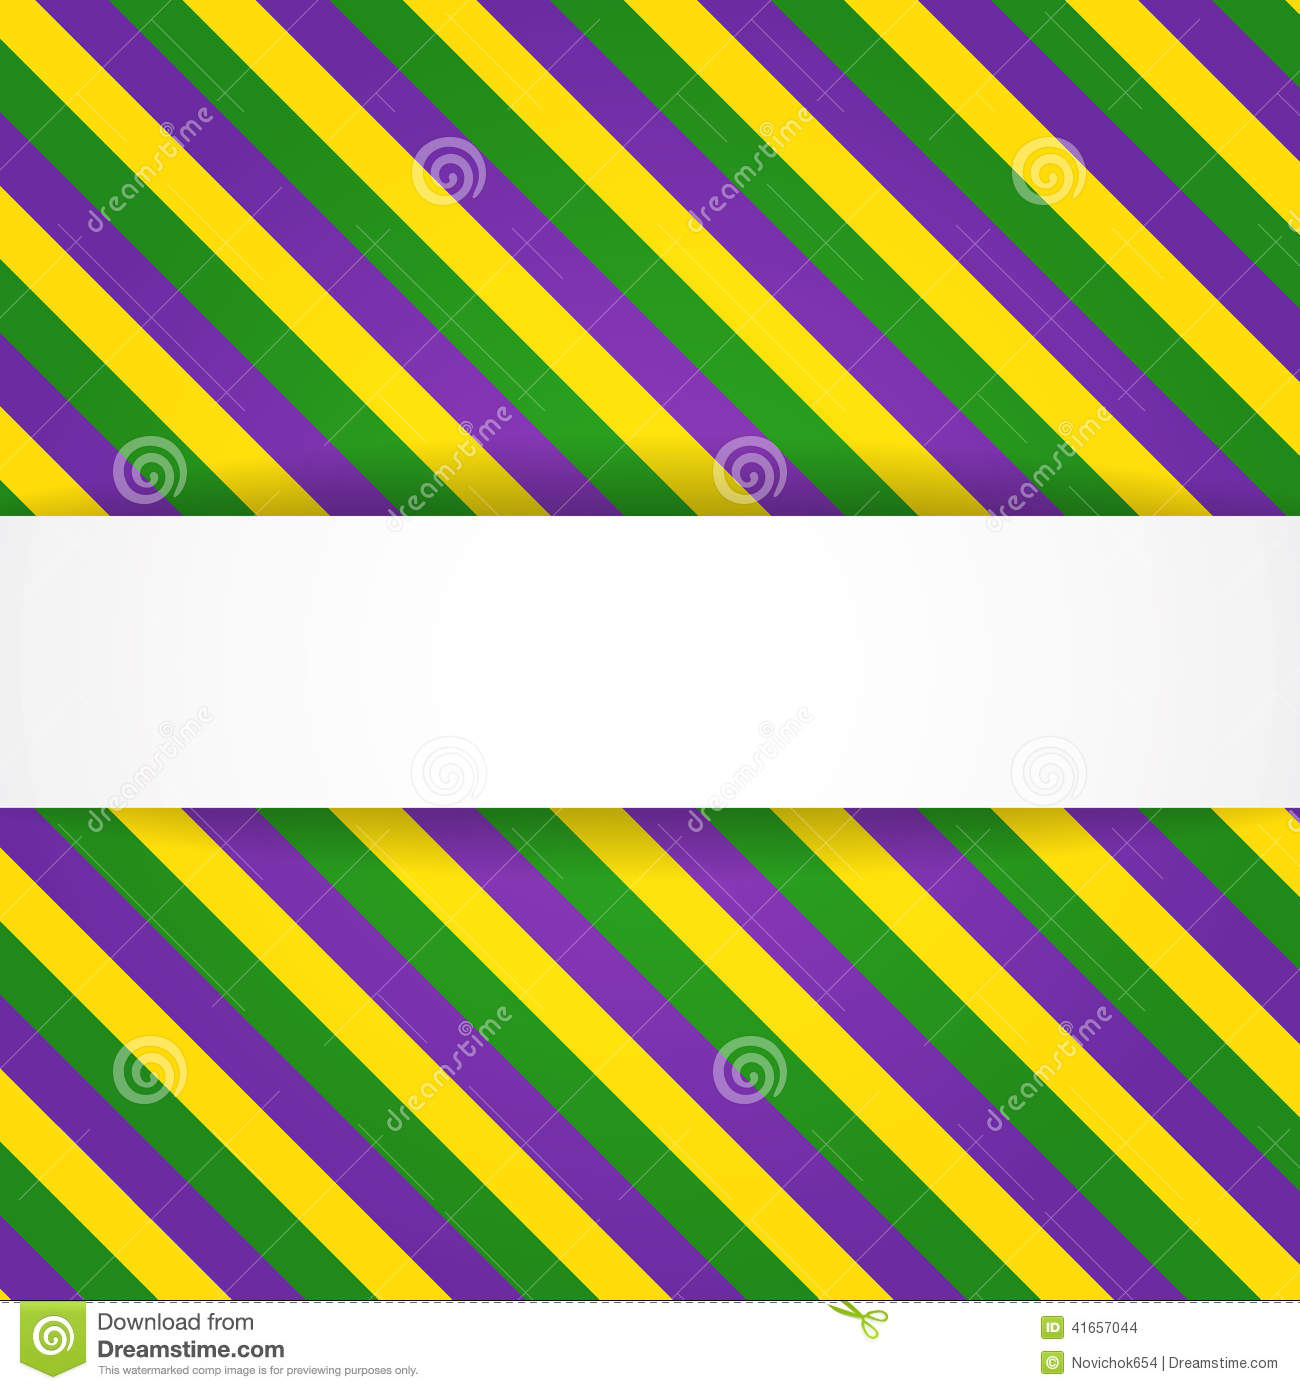 Mardi Gras Background With Banner Stock Vector - Image: 41657044